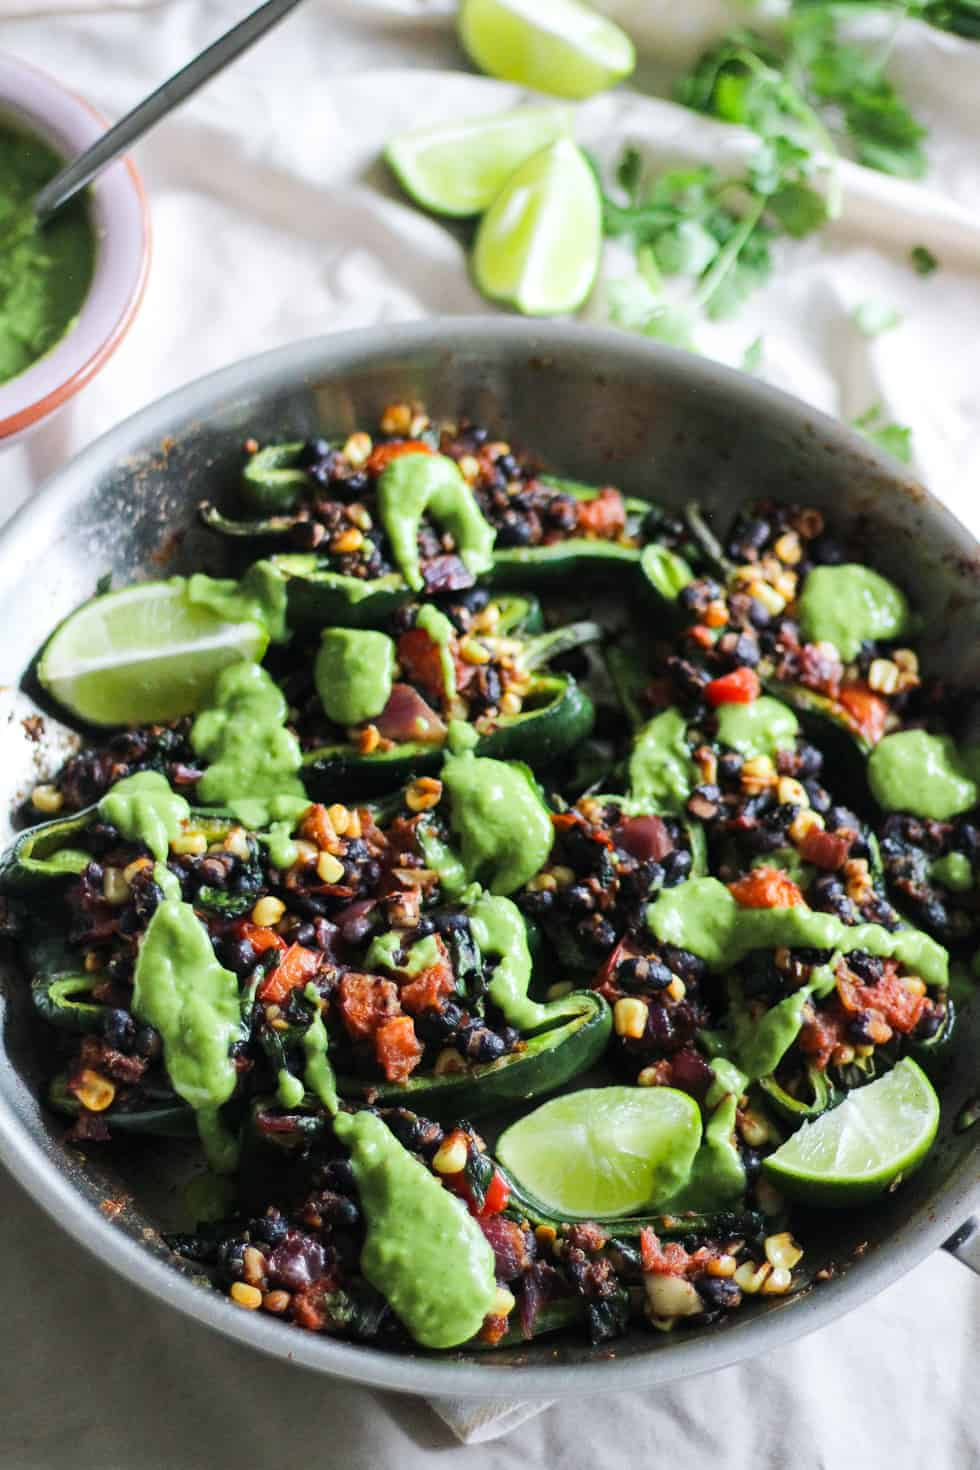 Skillet filled with vegan Stuffed Poblano Peppers with green sauce.